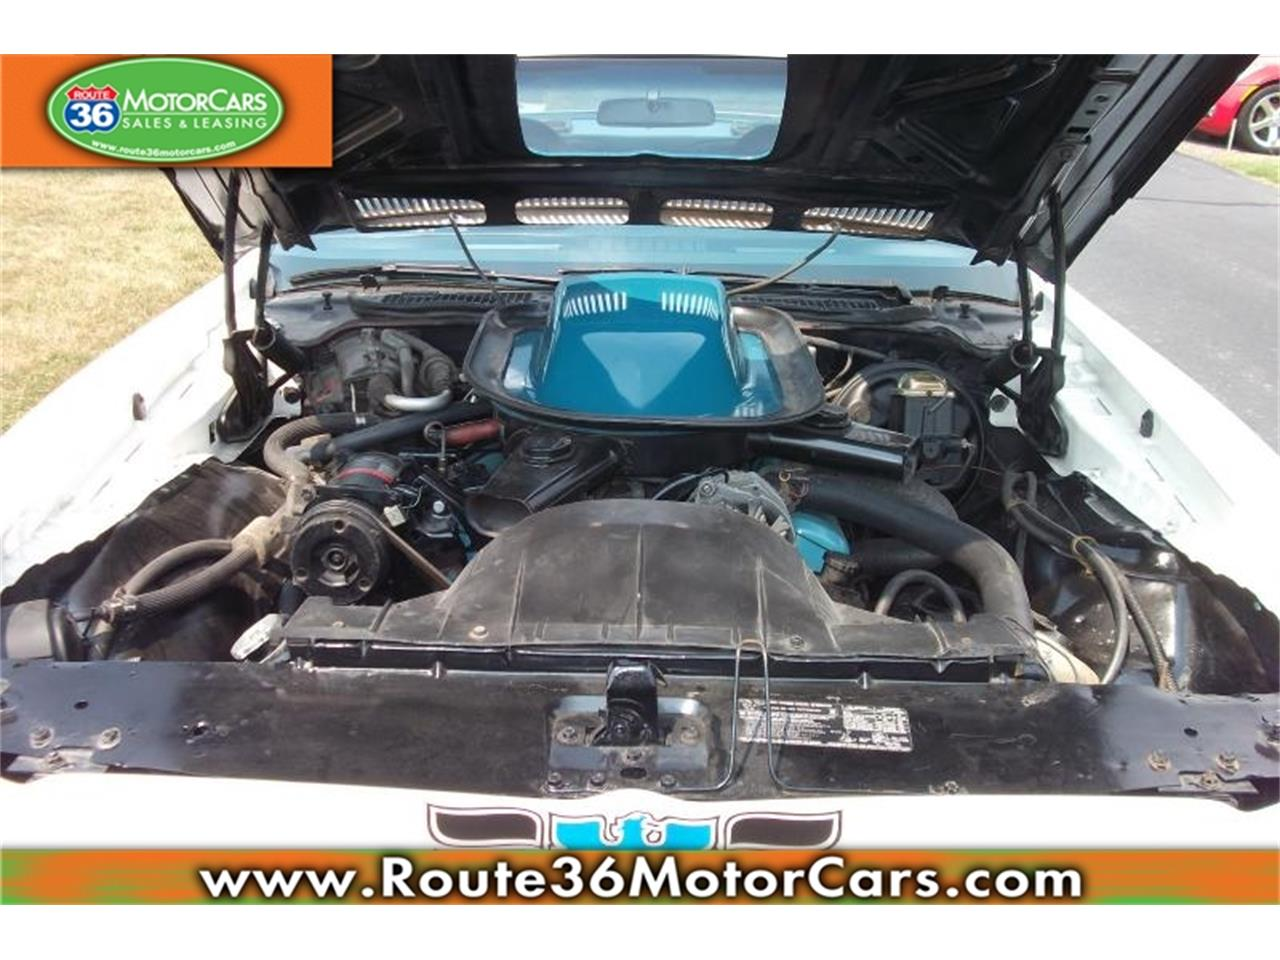 Large Picture of 1972 Pontiac Firebird - $54,975.00 Offered by Route 36 Motor Cars - IKH6